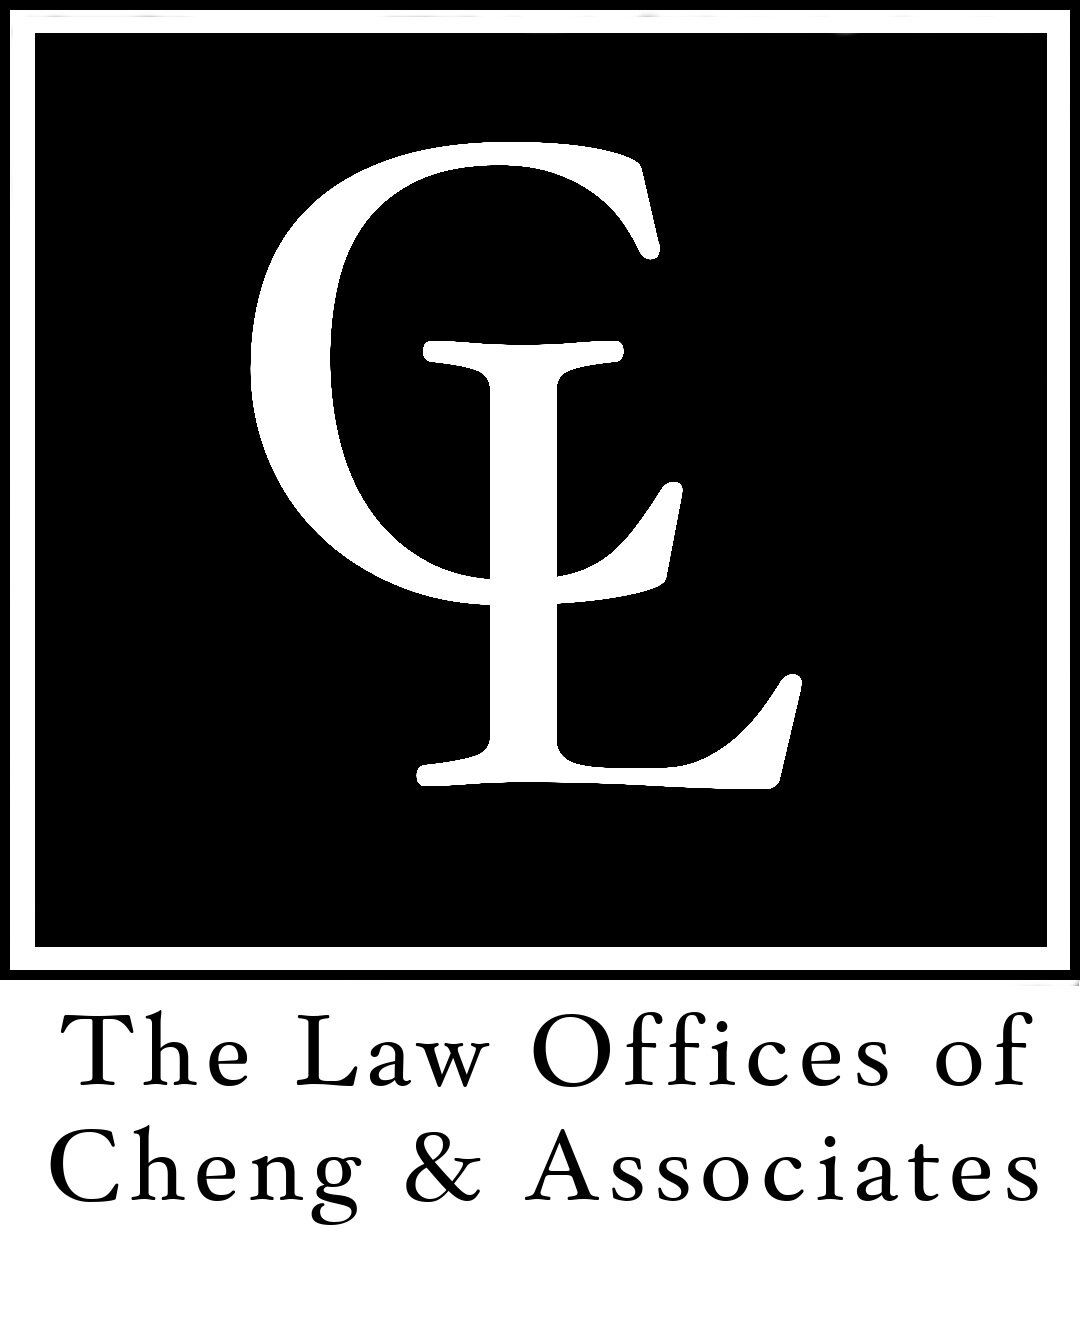 Law Offices of Cheng & Associates